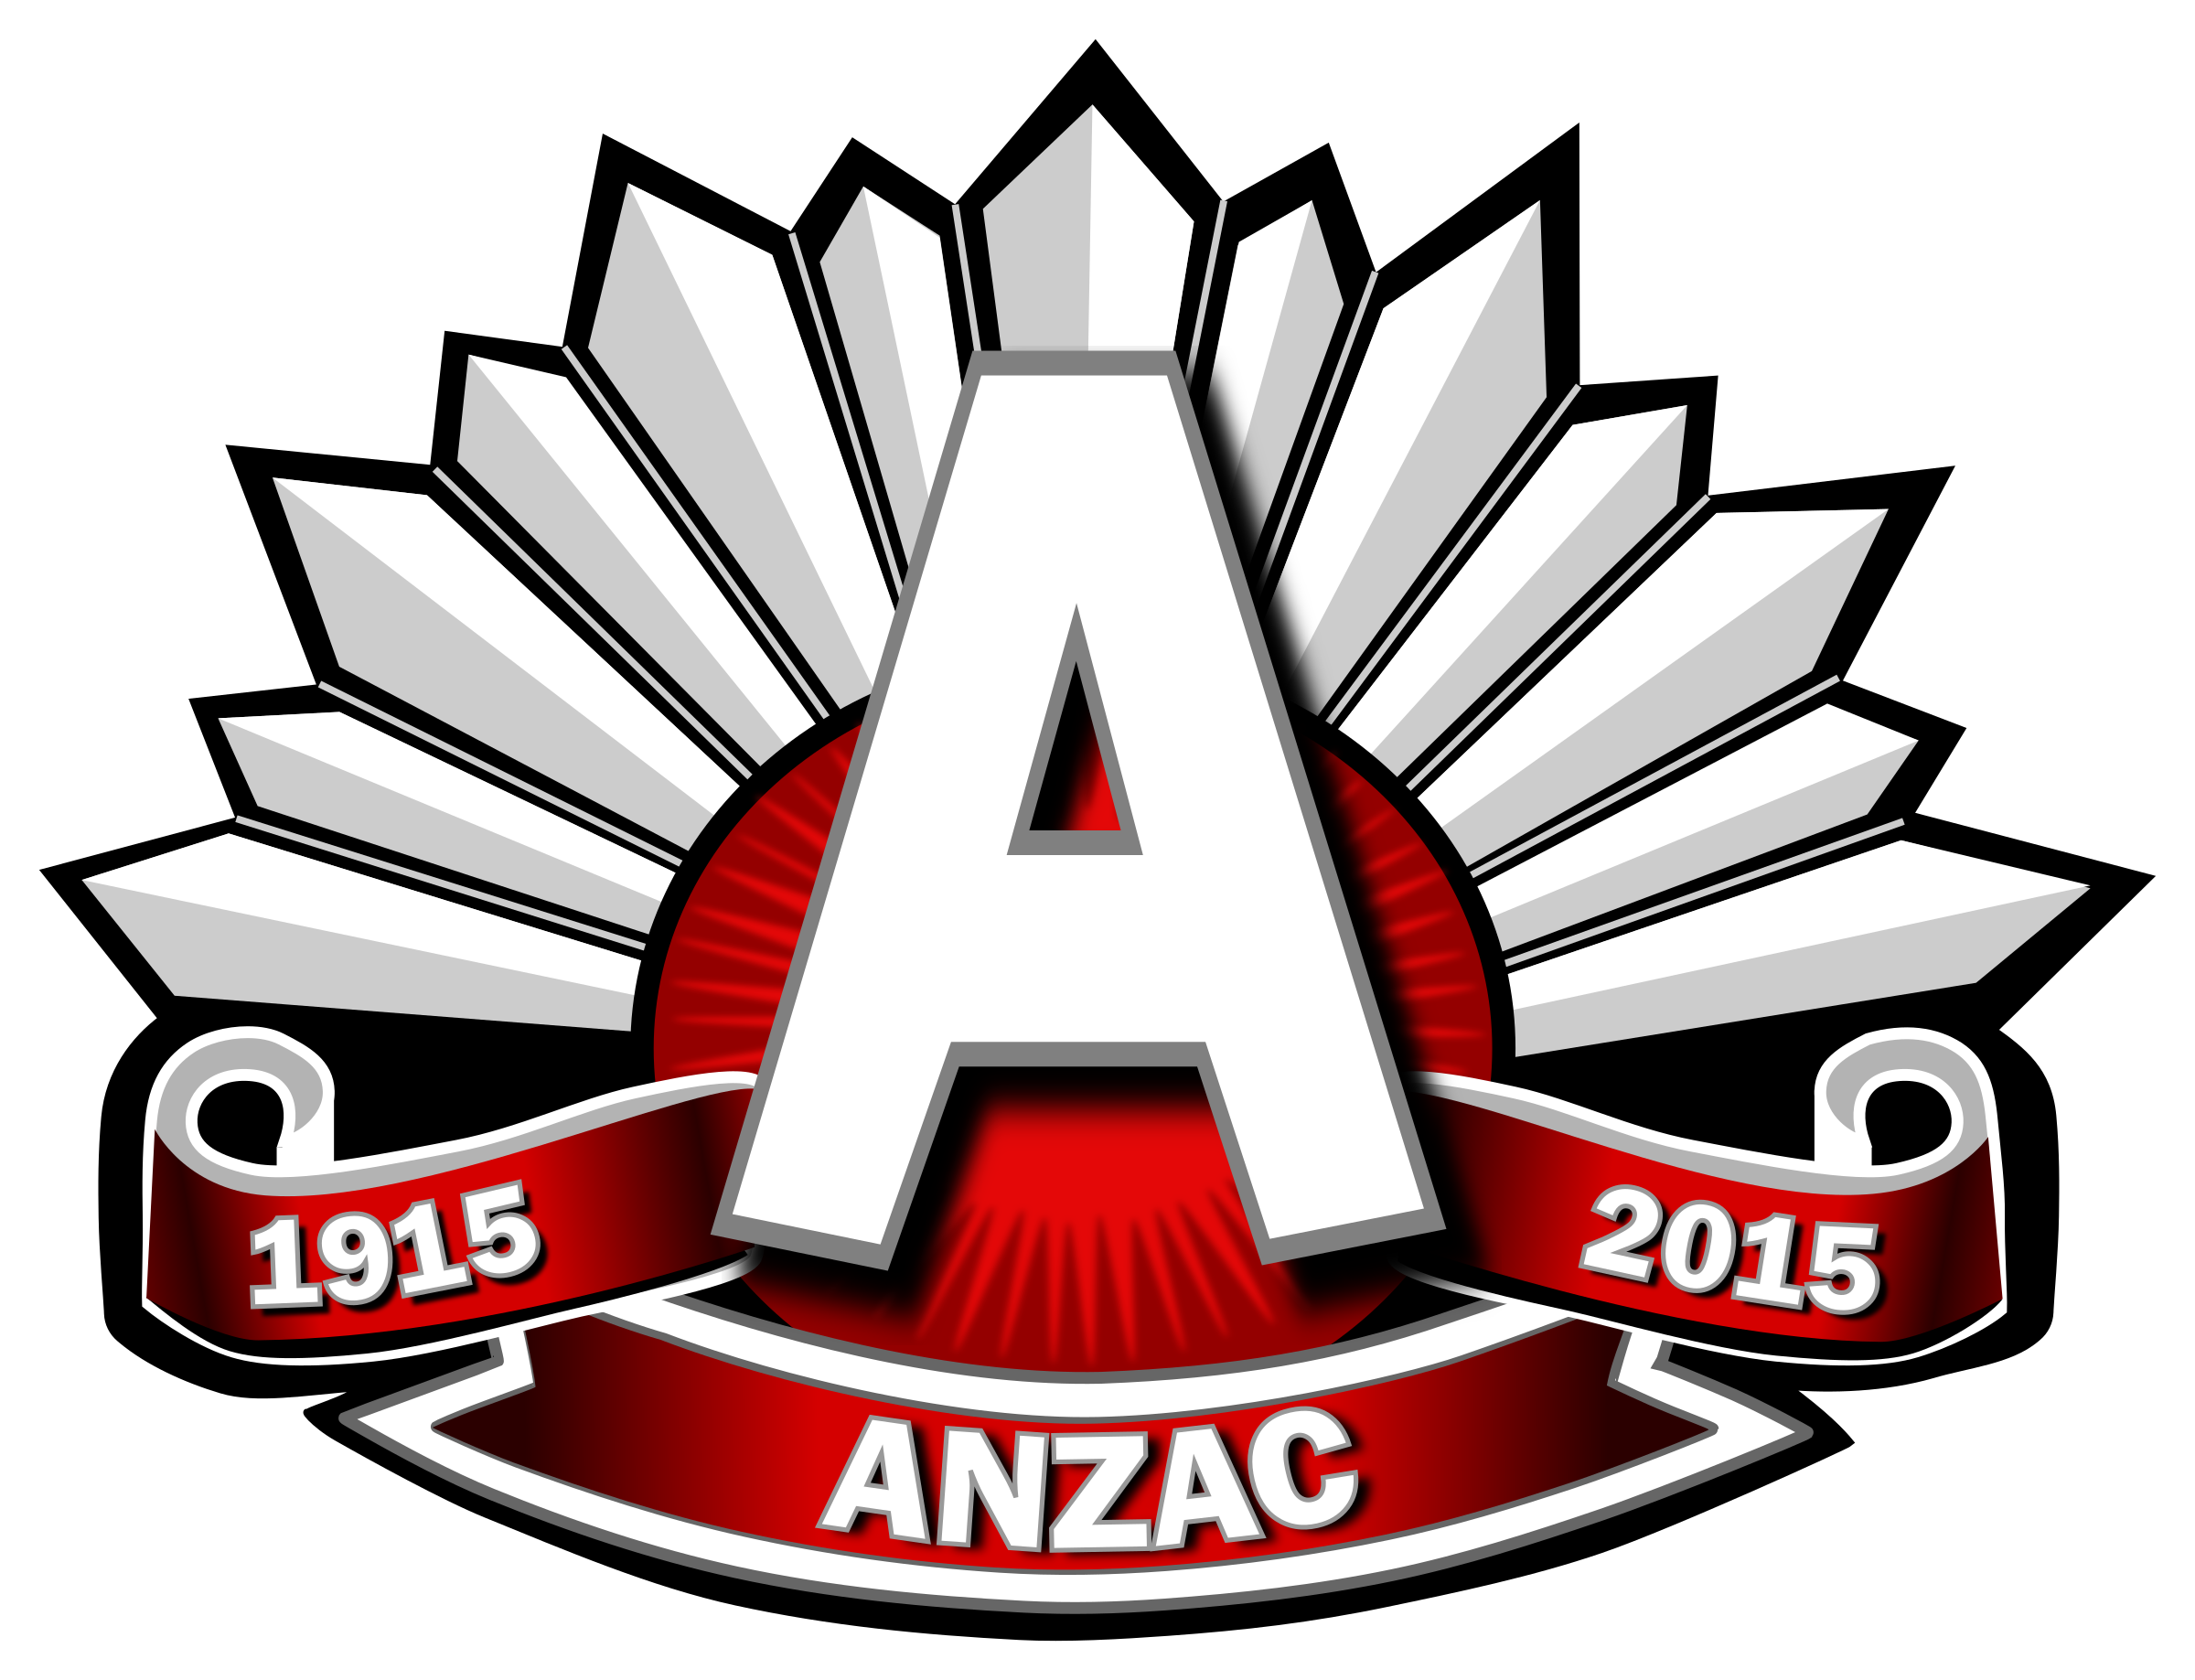 2018 clipart anzac day. Logo red big image